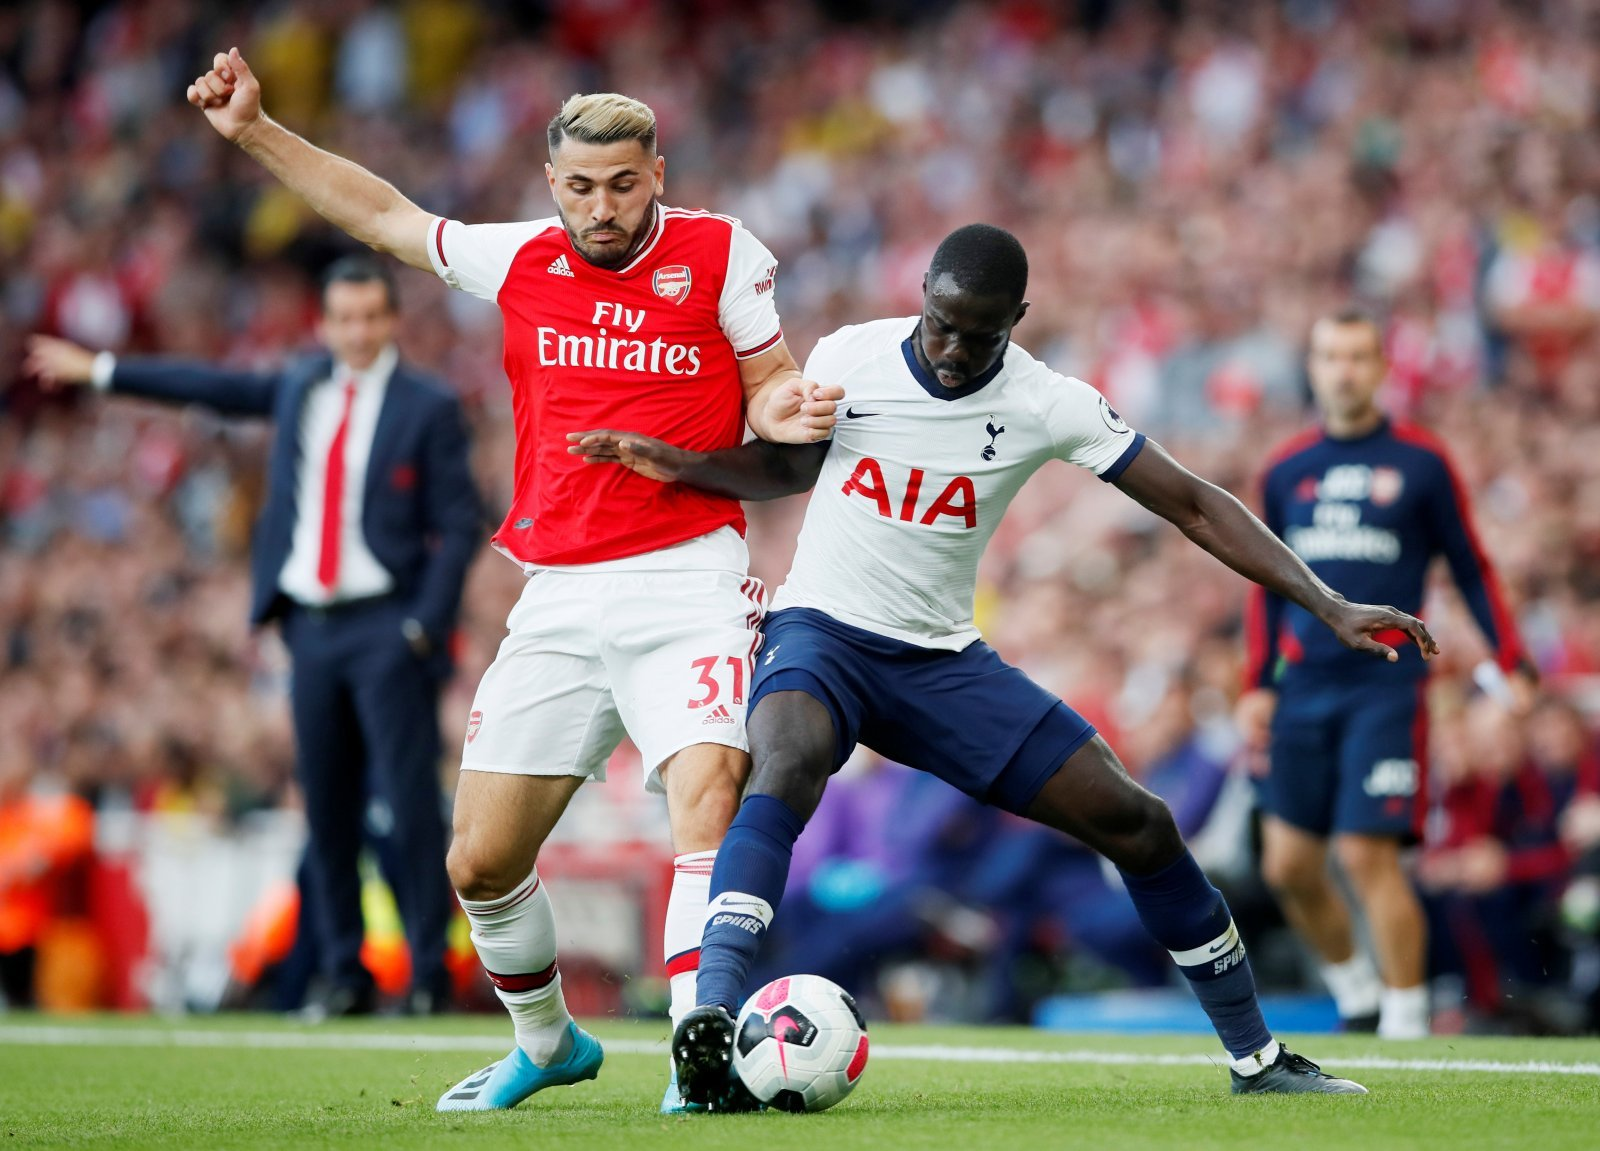 Tottenham Hotspur: Fans were delighted with what they saw from Davinson Sanchez